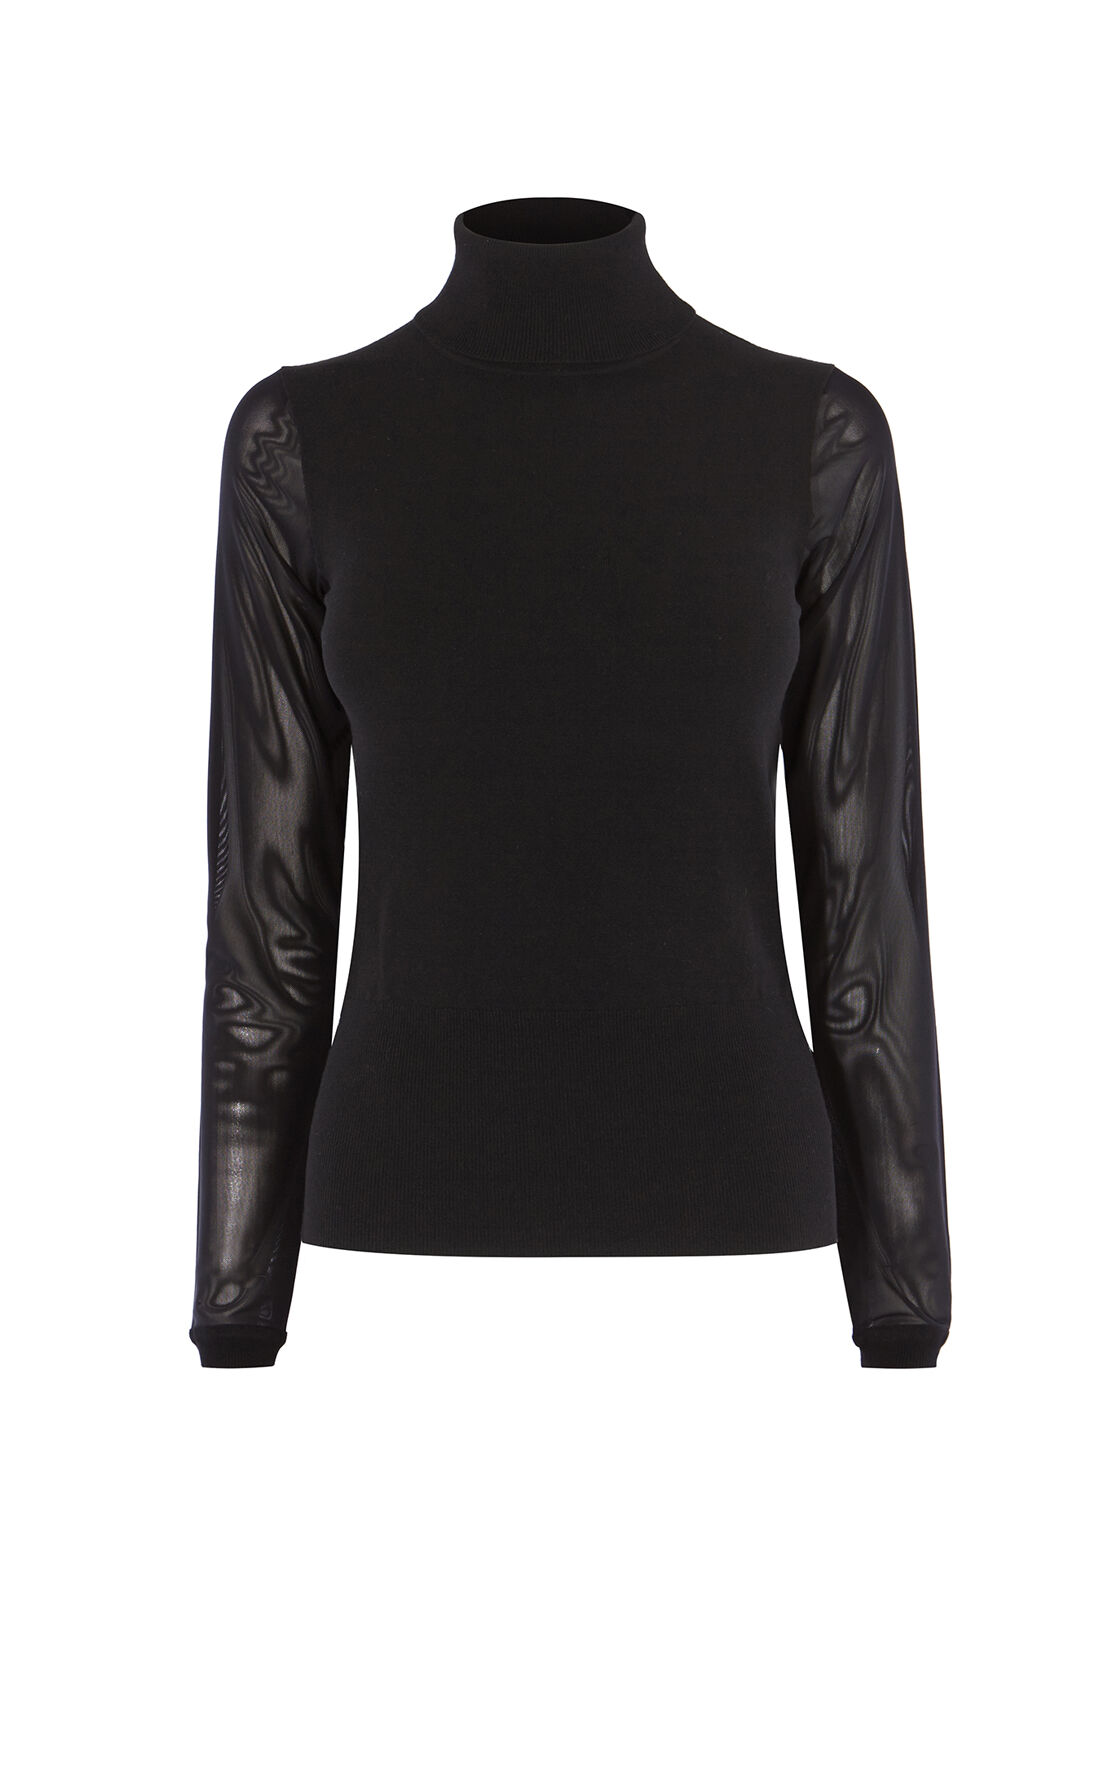 Karen Millen, MESH-SLEEVED TOP Black 0